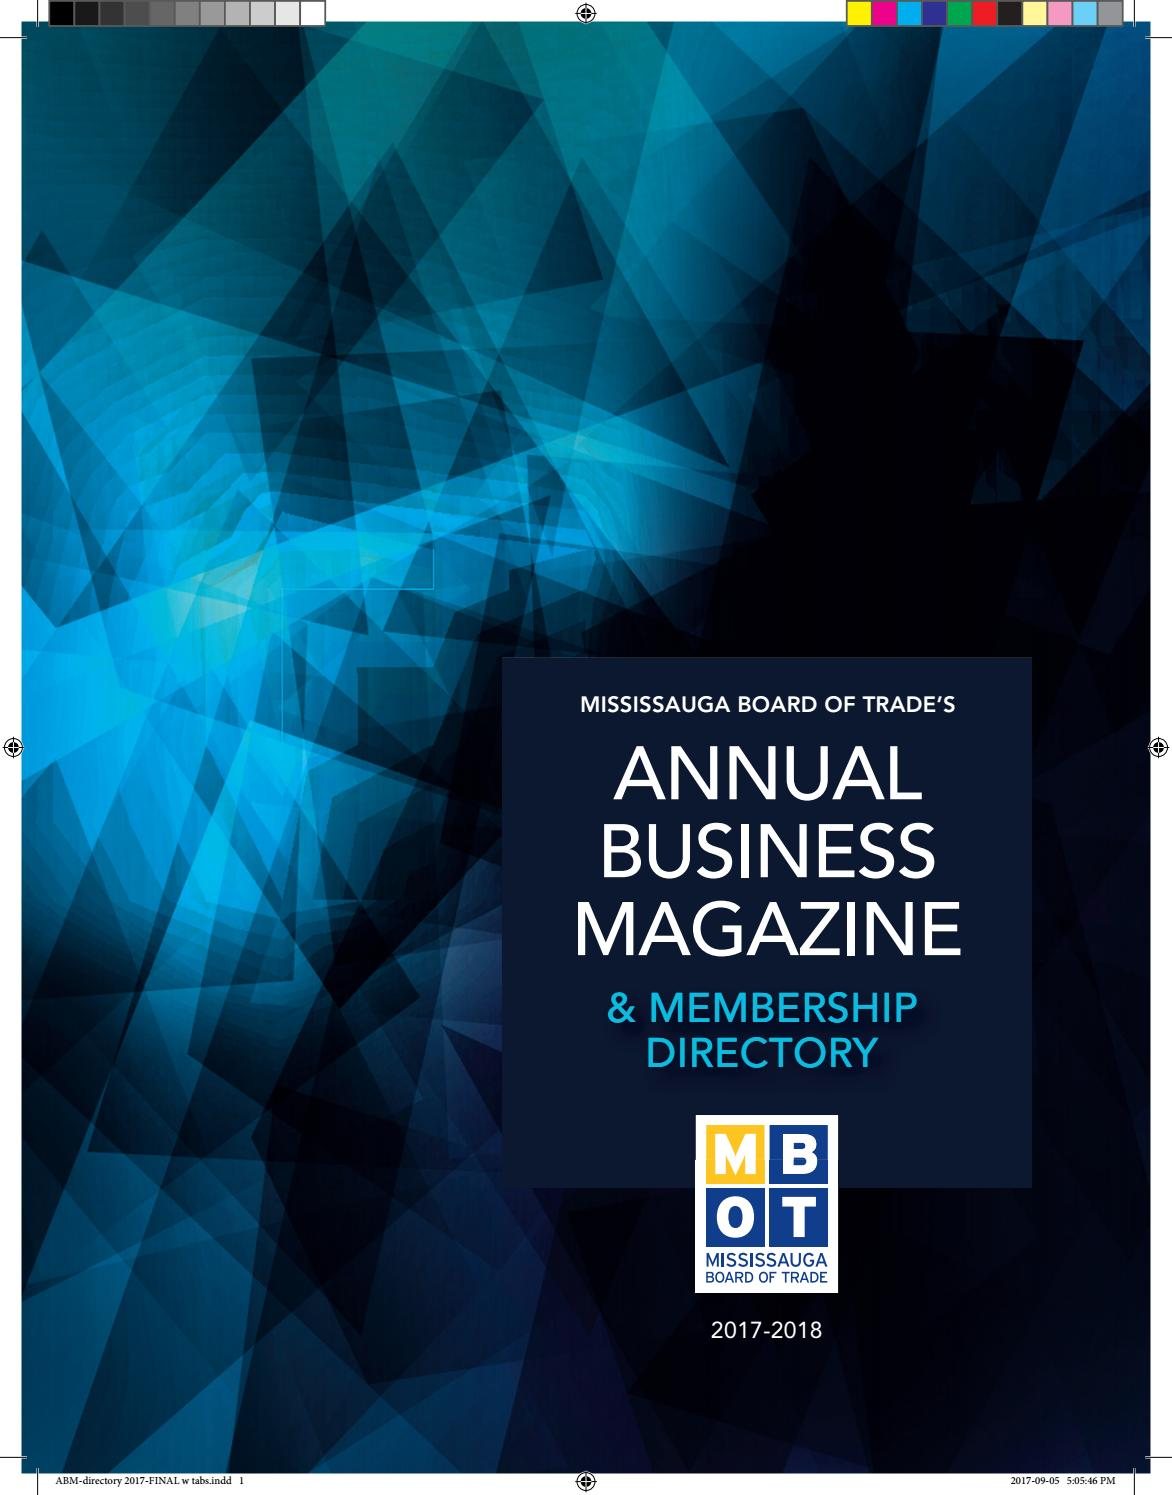 Annual Business Magazine 2017 by Mississauga Board of Trade